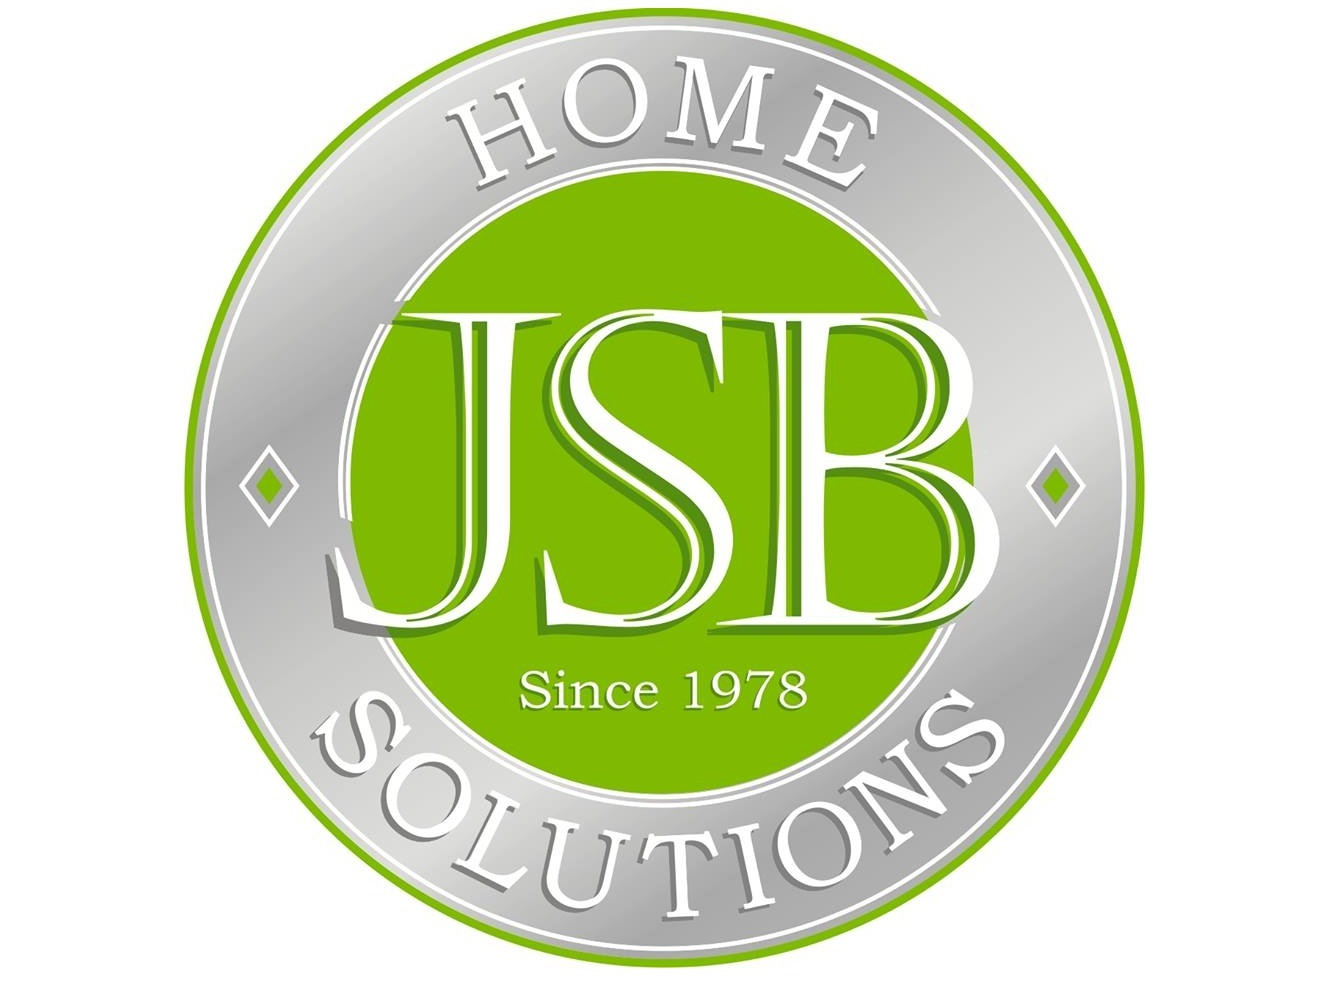 KOHLER Bathroom & Kitchen Products at JSB Home Solutions in Canal ...